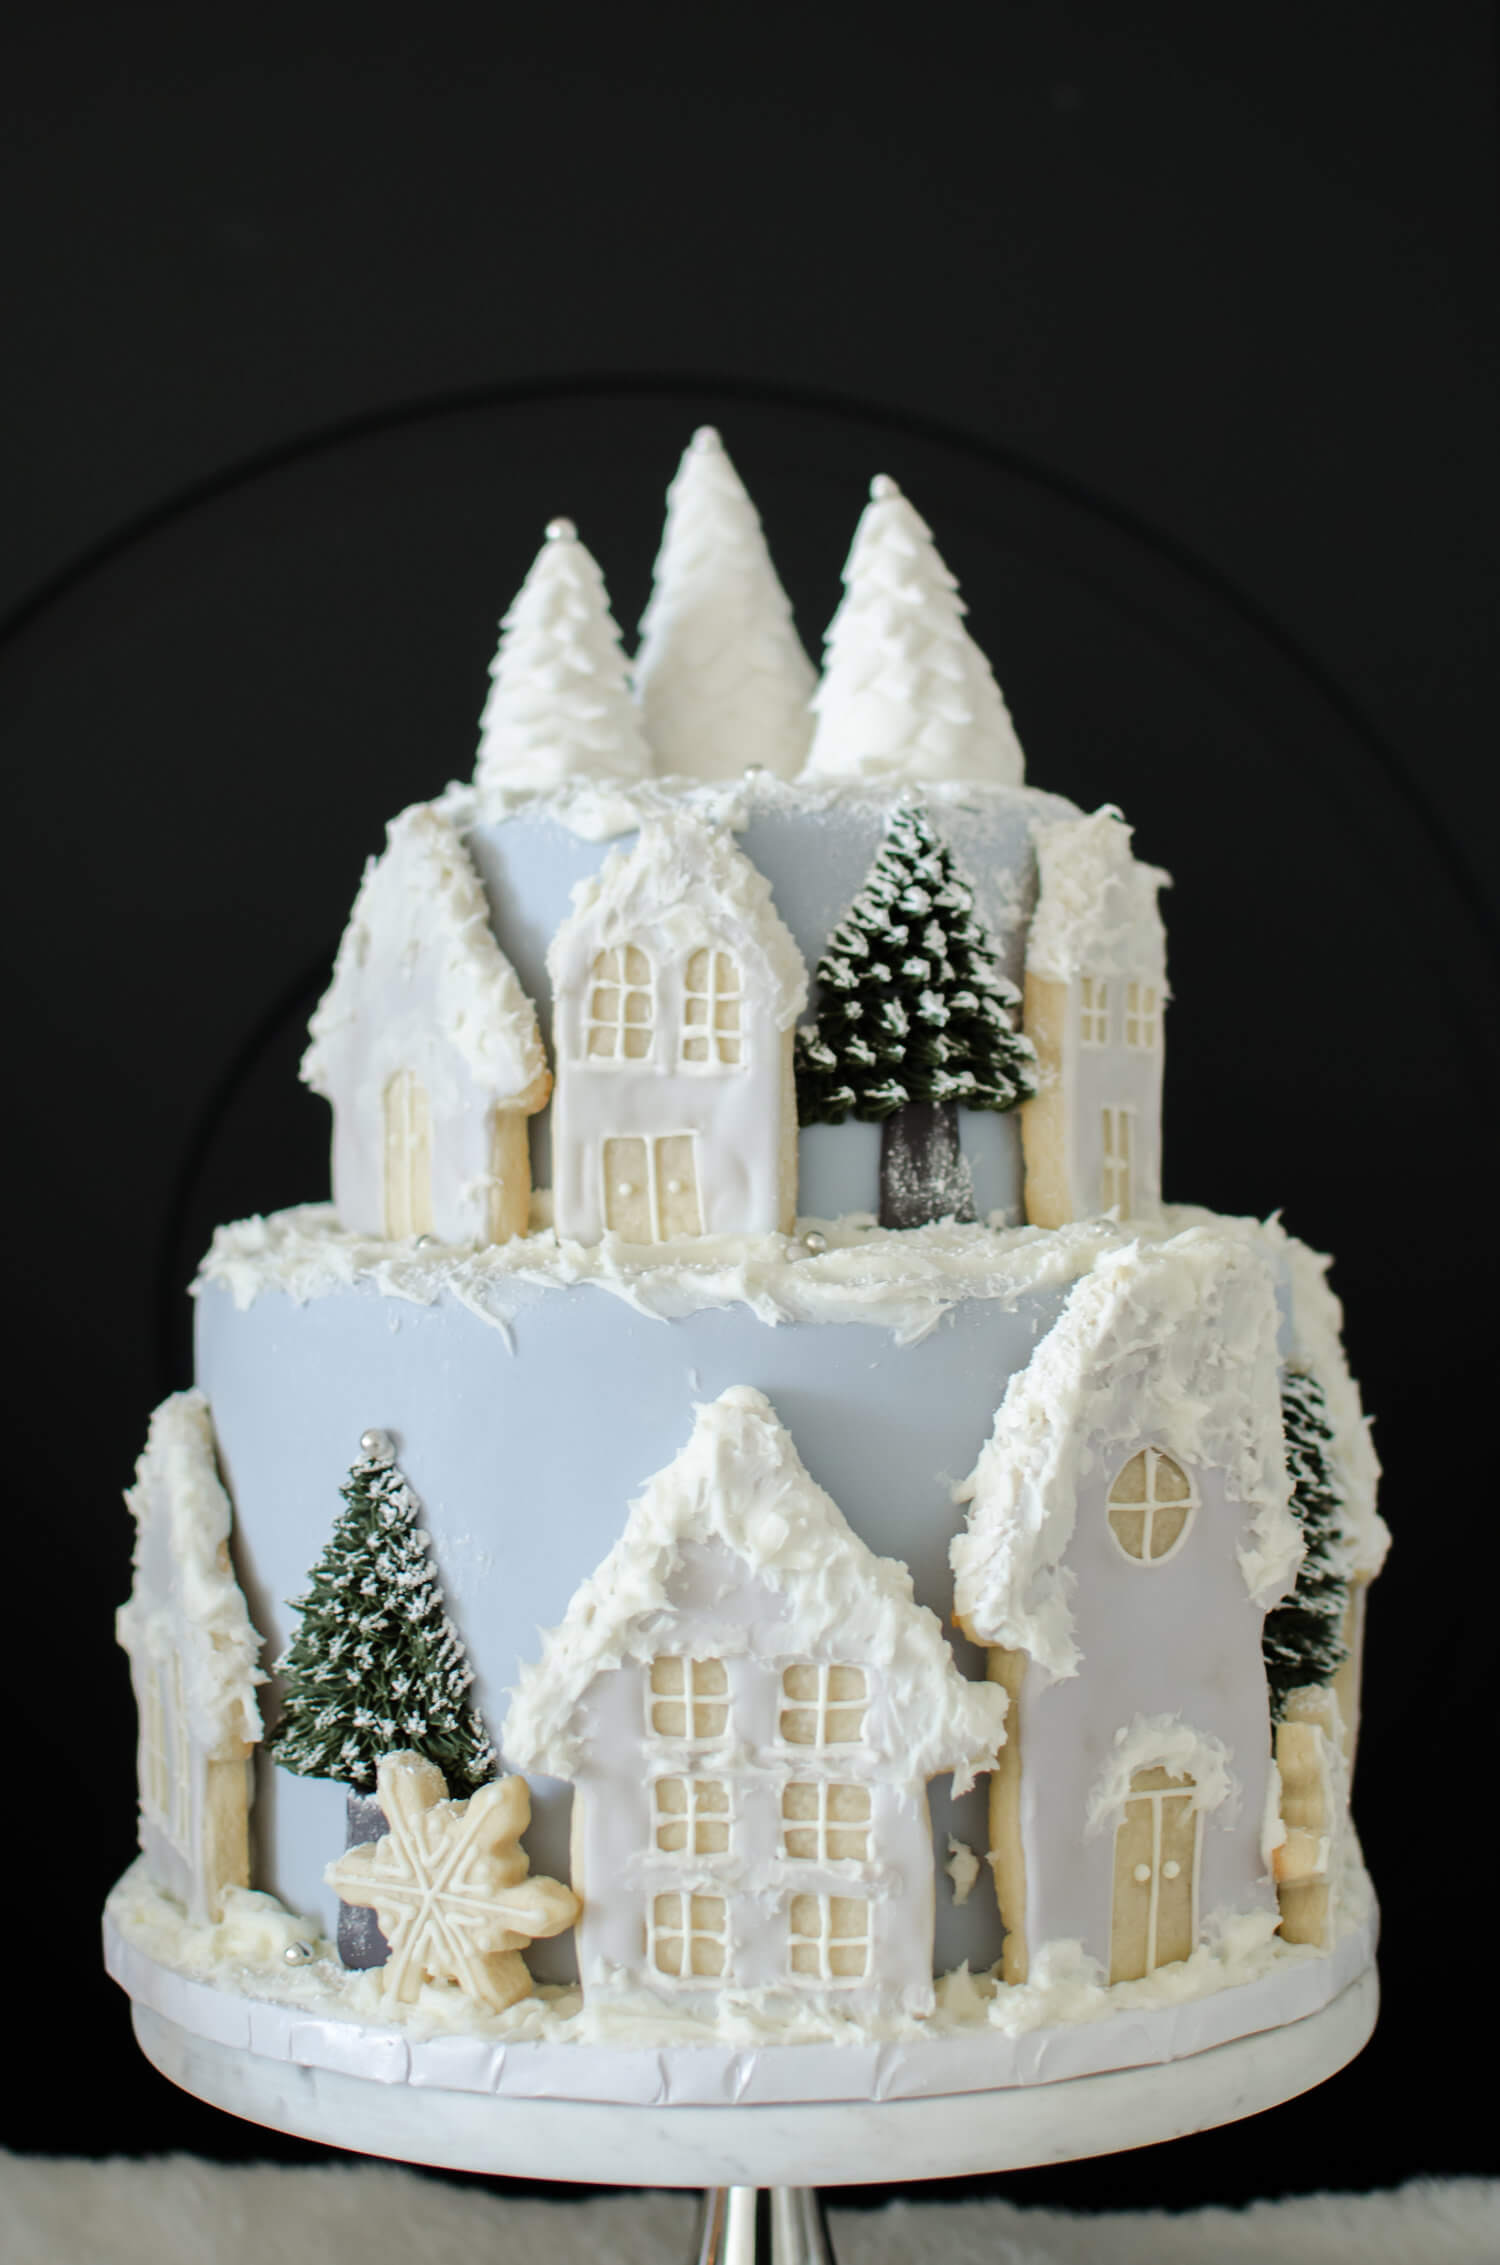 Winter Bridal Shower Cake Idea with a snowy village scene created with frosted cookies and trees. See more from this Winter Wonderland themed Bridal Shower Inspiration created by Mint Event Design www.minteventdesign.com #winterweddingideas #weddingwedding #bridalshowerideas #winterwonderland #wintercake #bridalshowercakes #weddingcakes